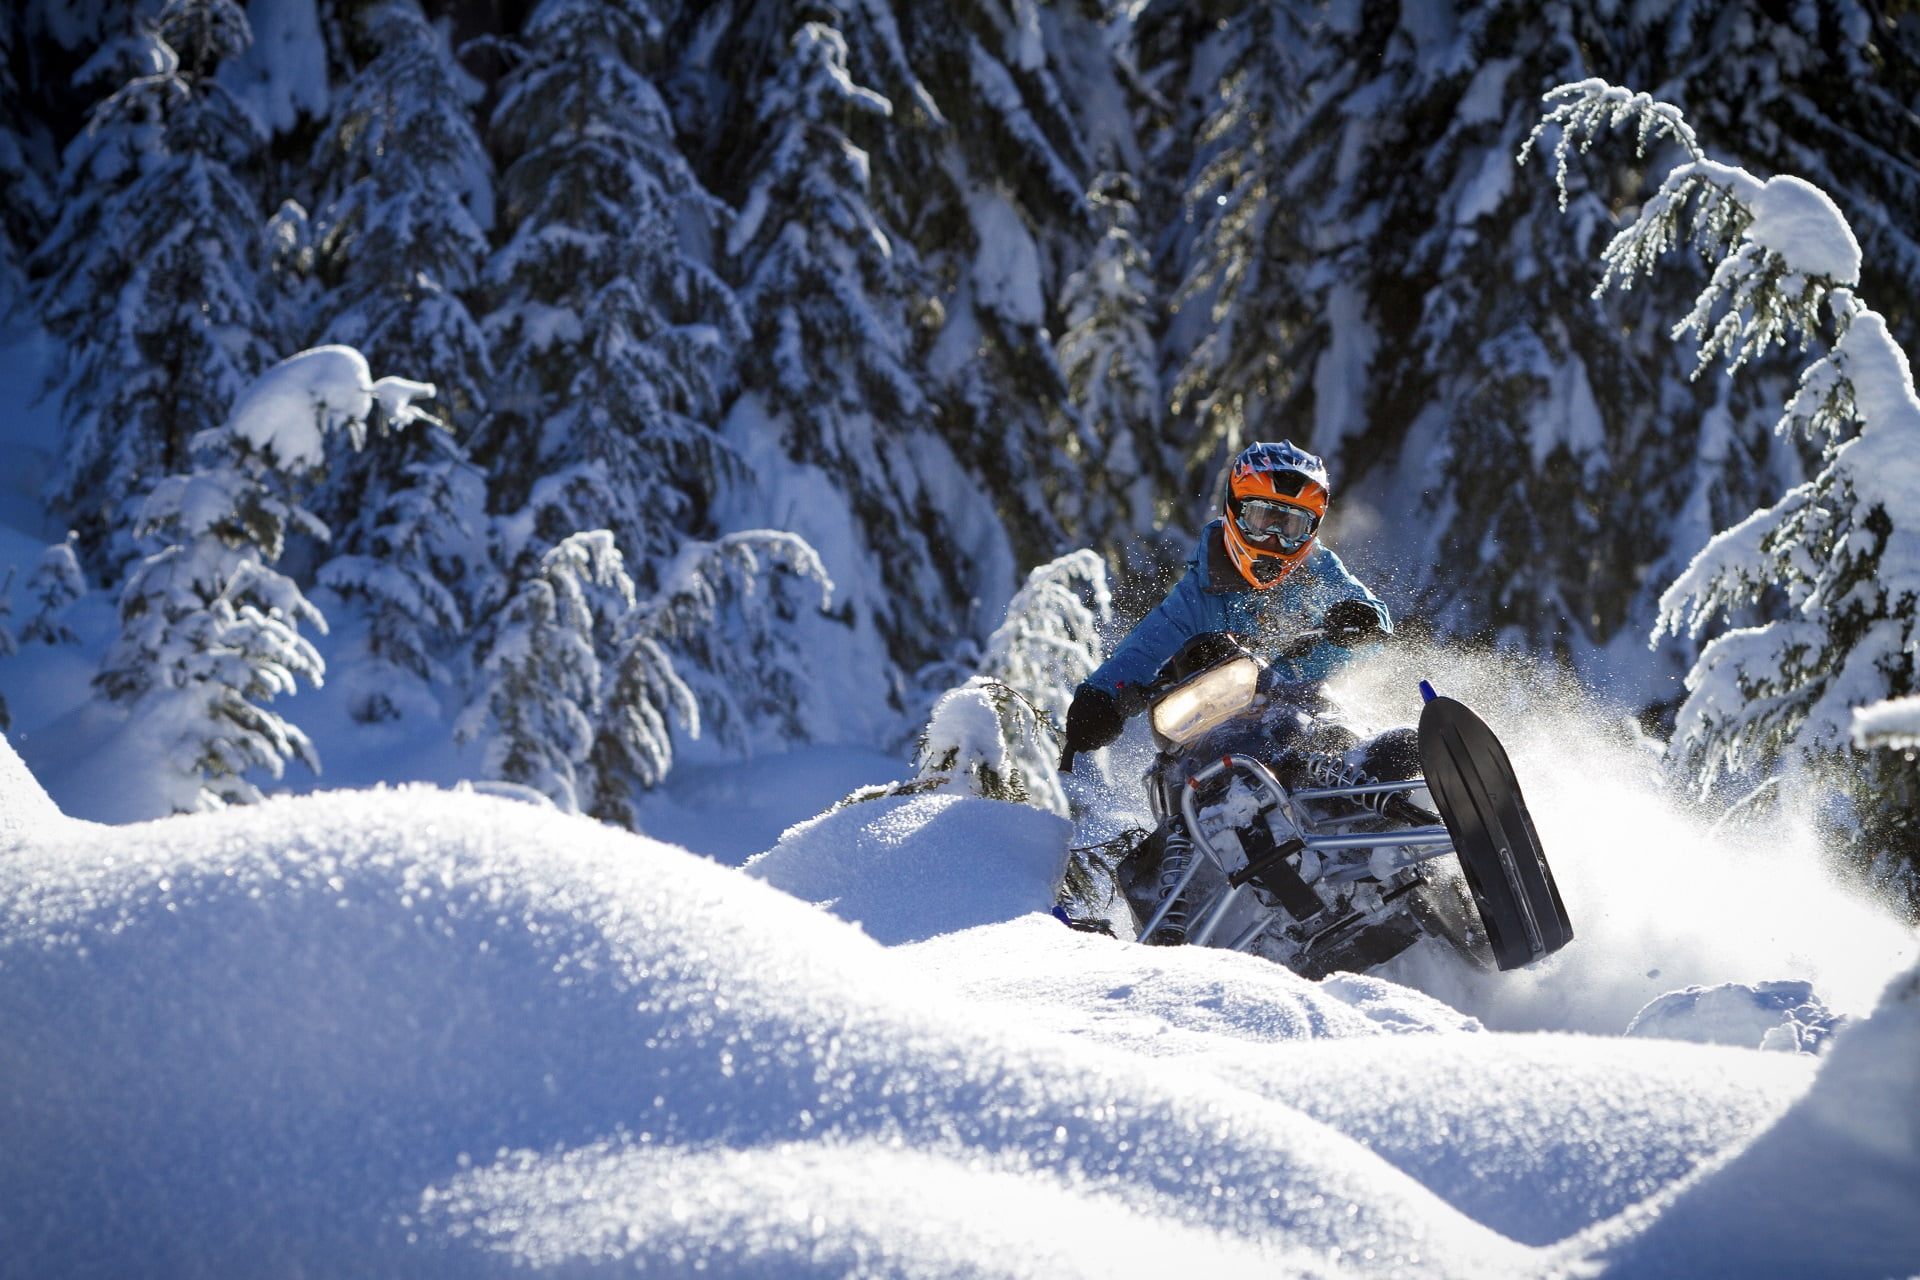 Snowmobiler riding fresh powder snow in back country.